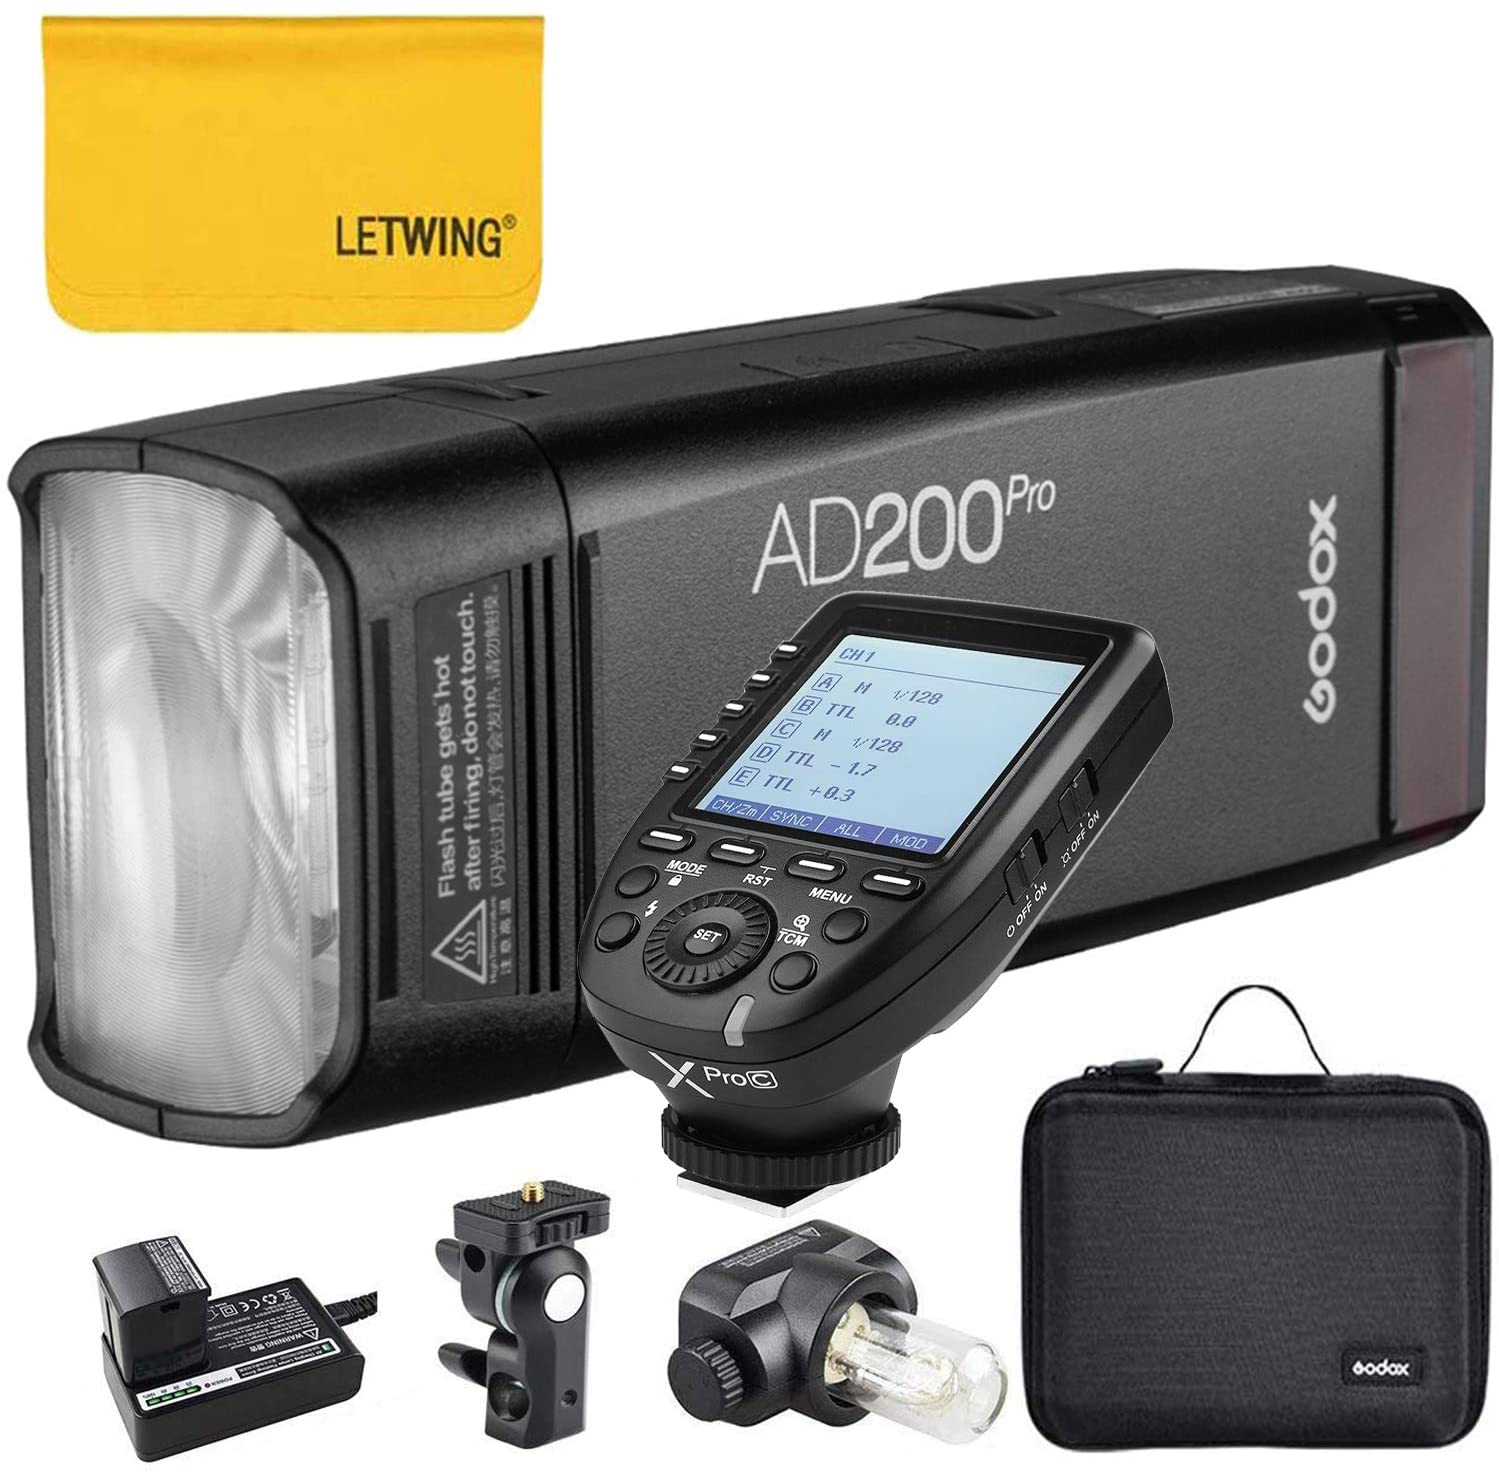 Godox AD200Pro TTL 2.4G HSS 1/8000s Pocket Flash Light Double Head 200Ws with 14.4V/2900mAh Lithium Battery and Godox XPro-C Flash Trigger Compatible for Canon Camera